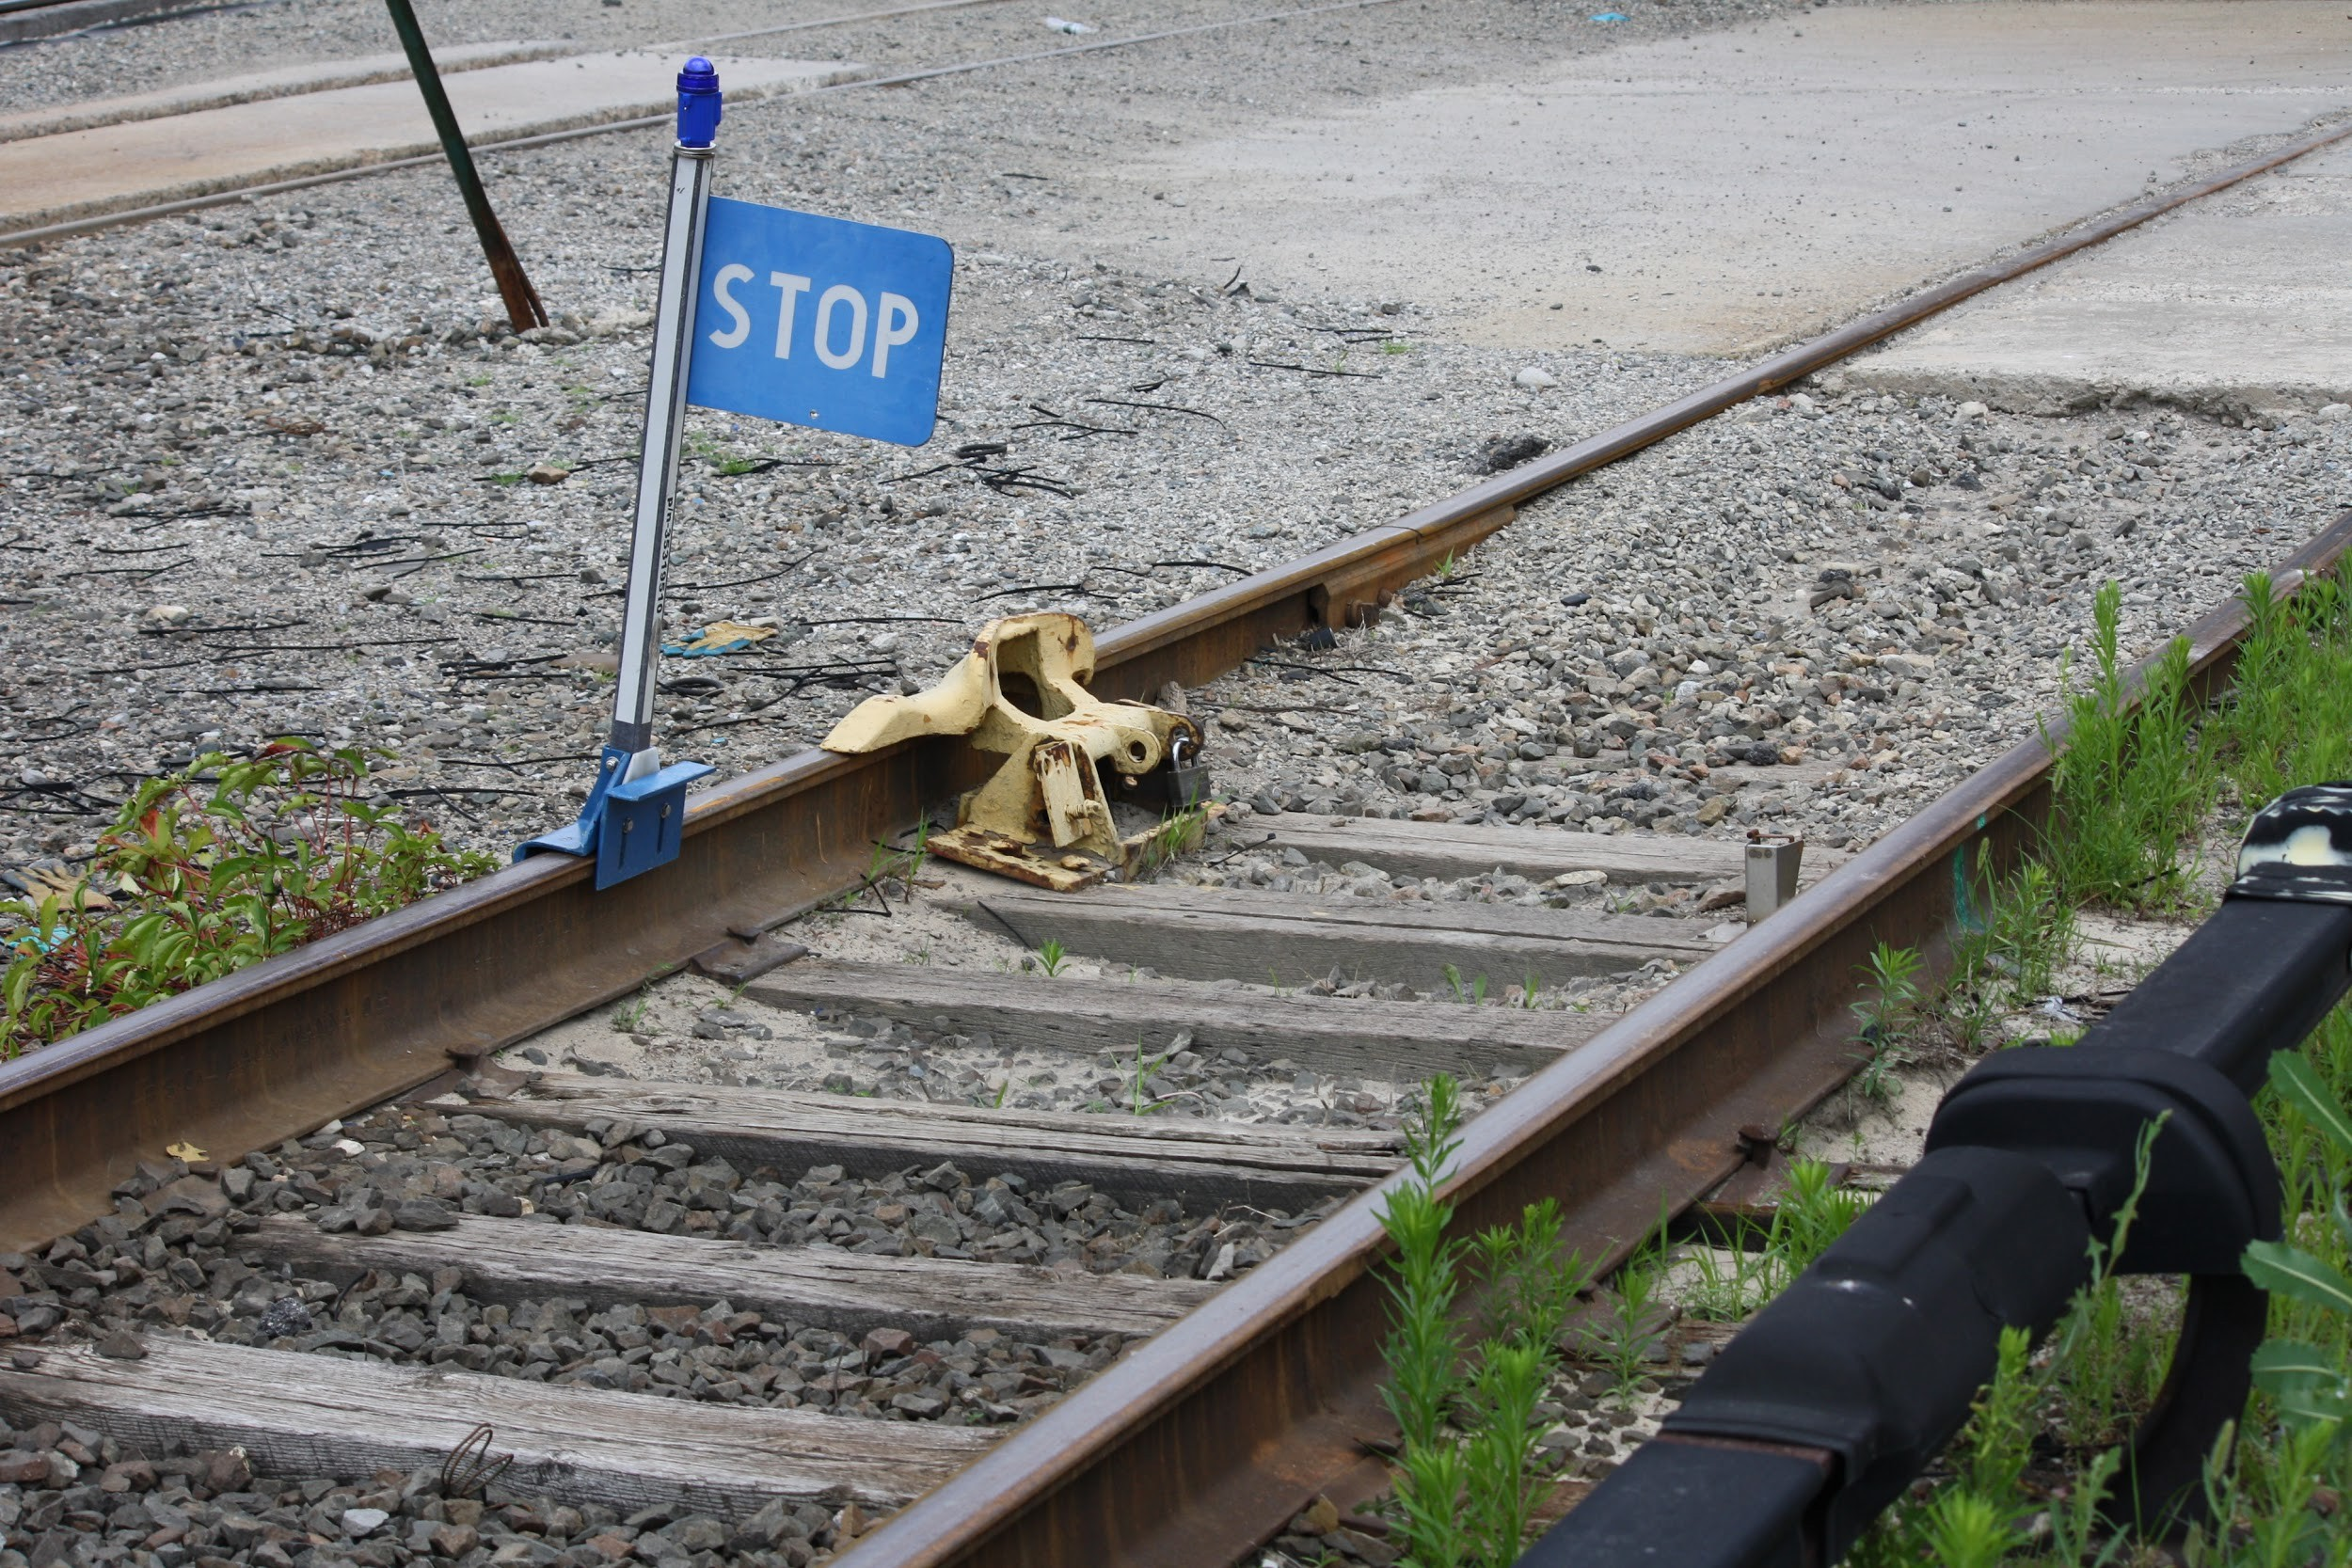 stop-sign-on-railroad-track.jpg